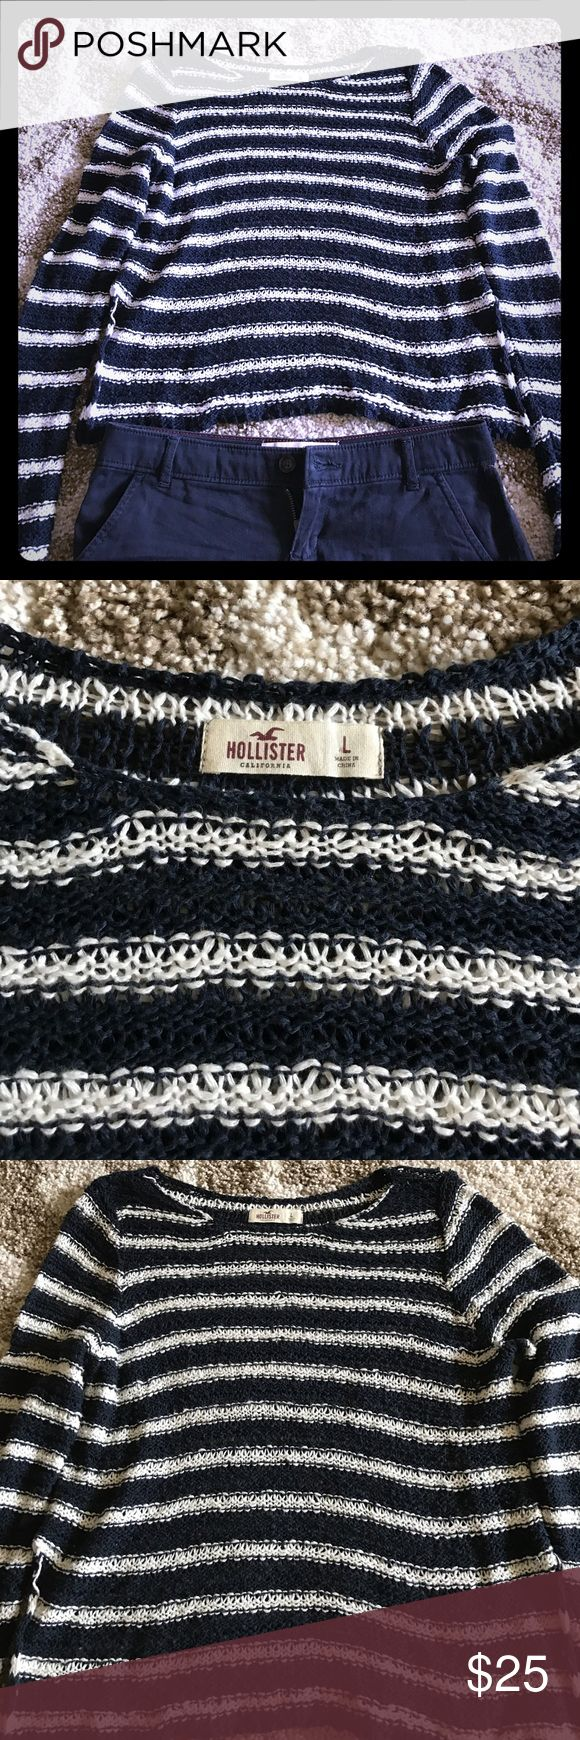 Hollister Open Stitch Sweater This piece is SO SOFT! Perfect for summer to wear over a tank, bandeau or bikini top.  Top is in great condition; size is large, but can really be worn S-L for more of a slouchy look.  Navy and white stripes are very neutral! Hollister Sweaters